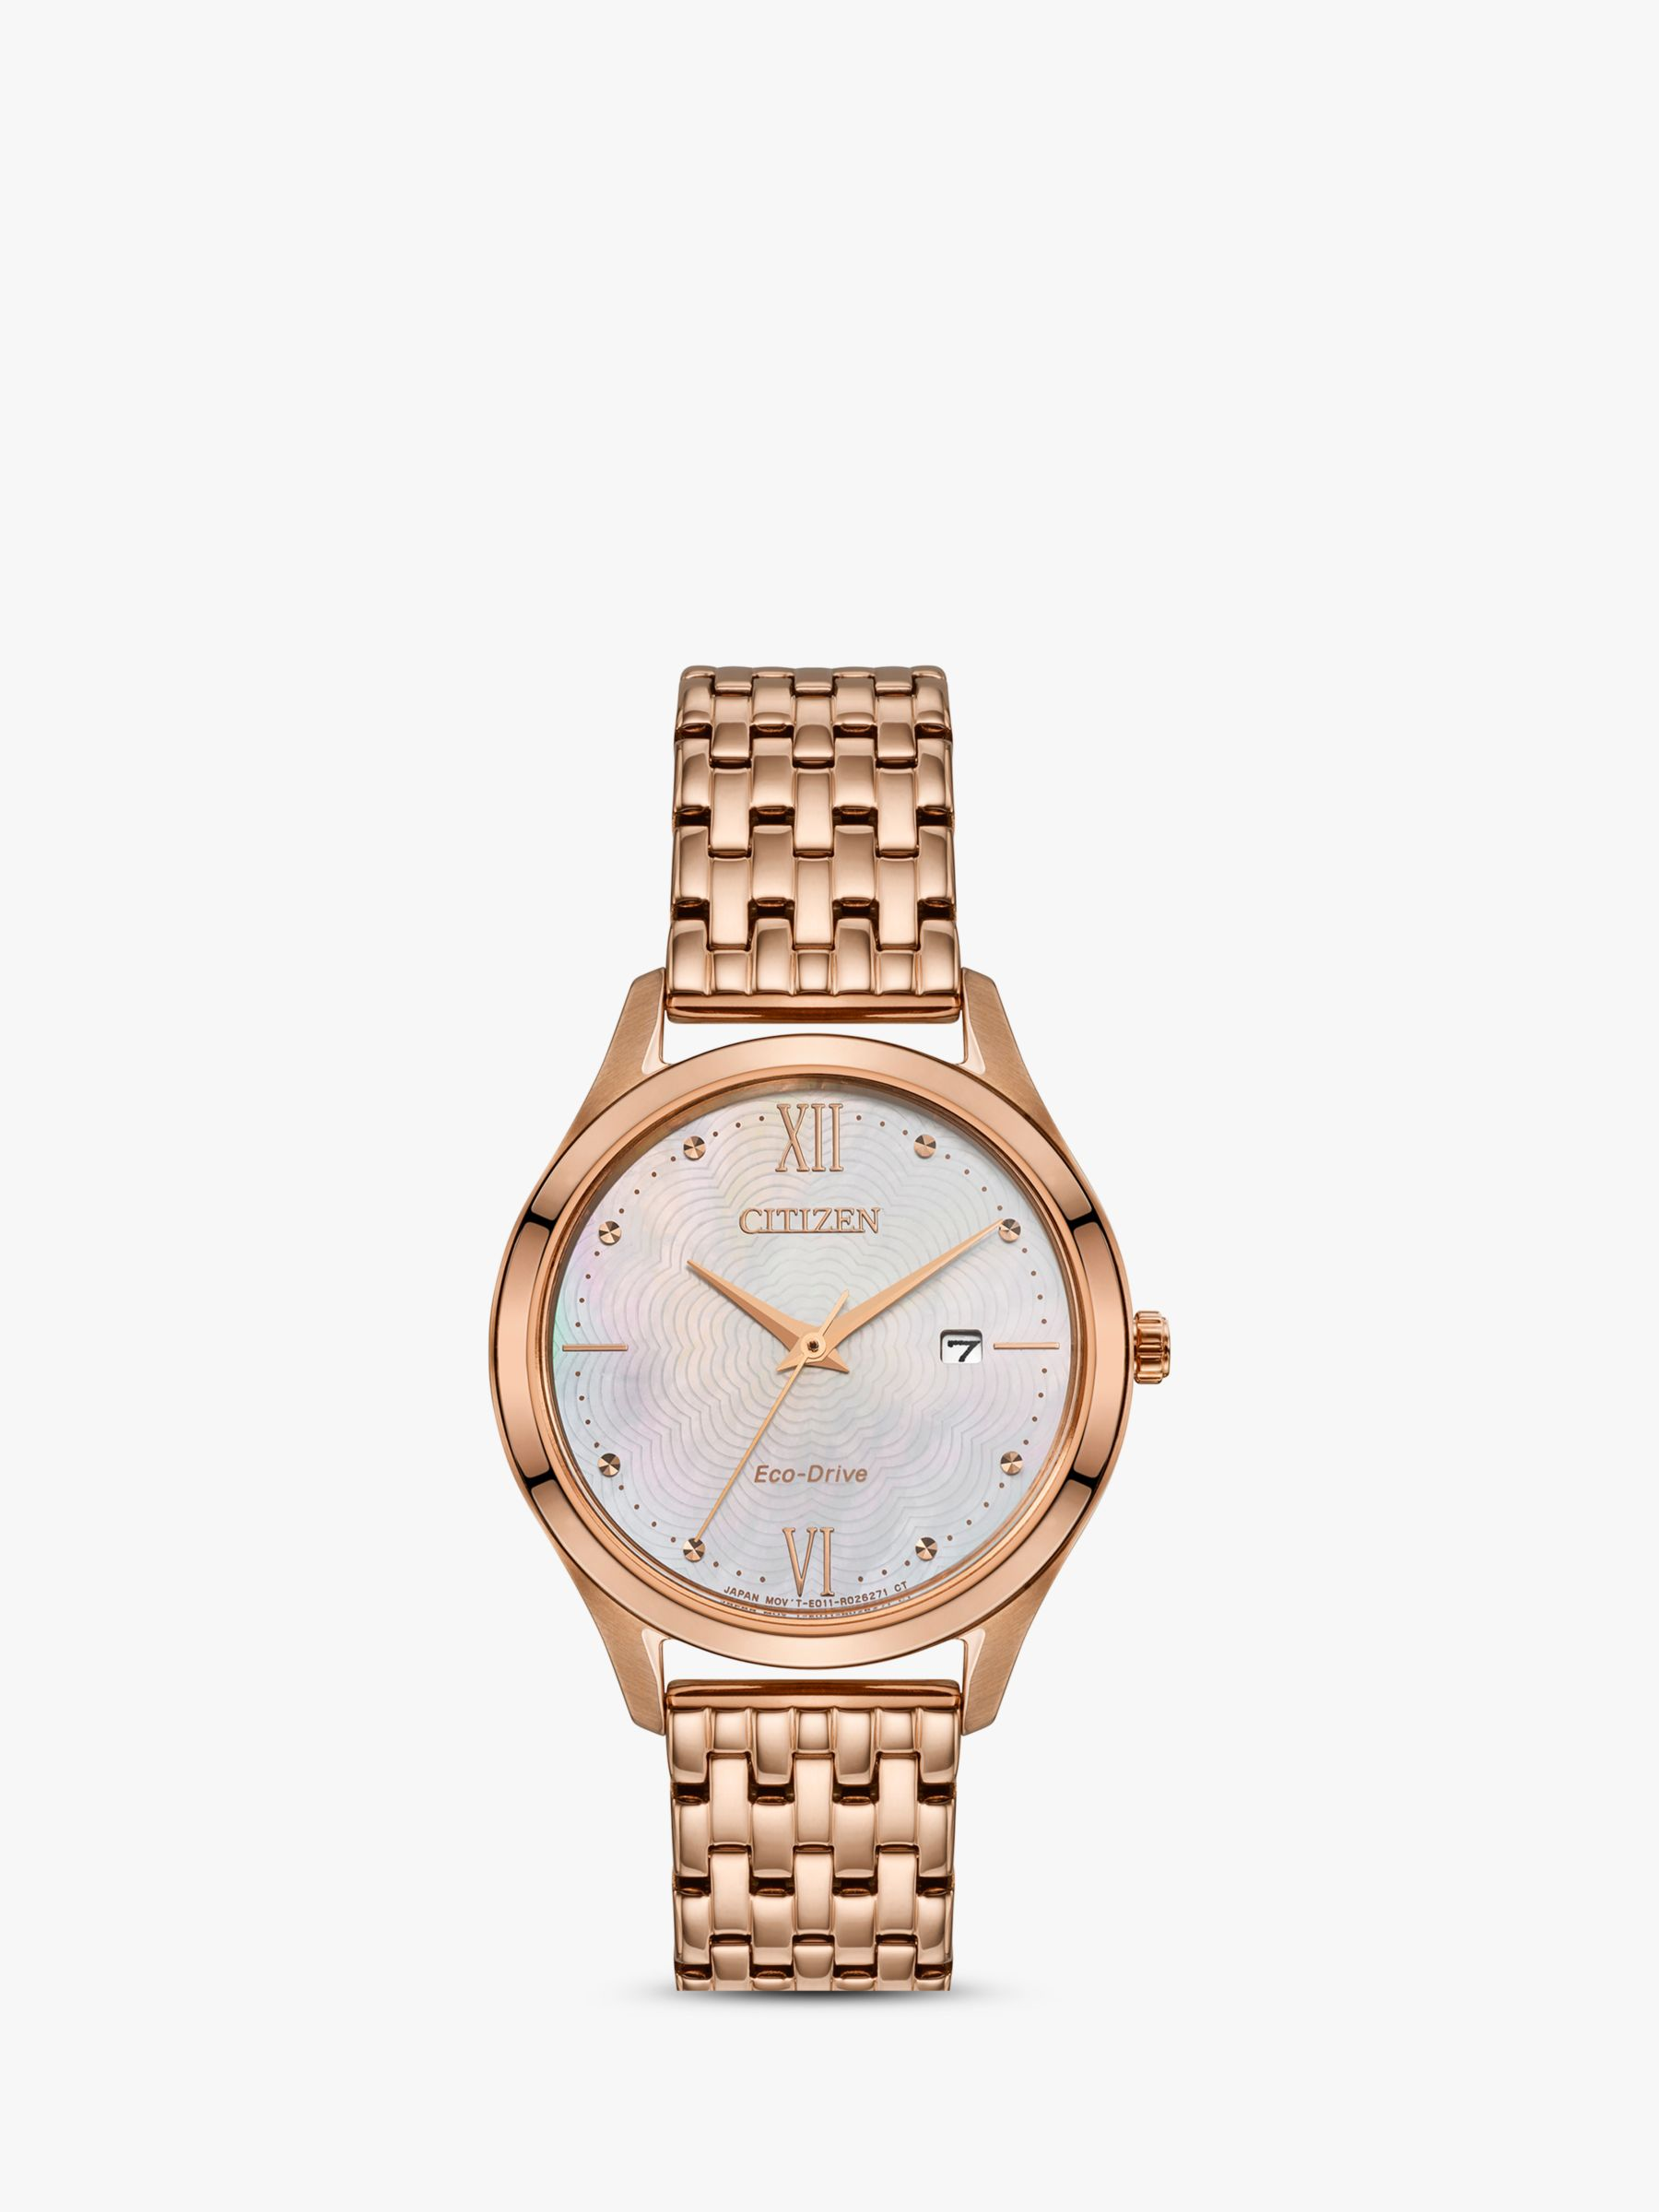 Citizen Citizen EW2533-89D Women's Date Bracelet Strap Watch, Rose Gold/Multi